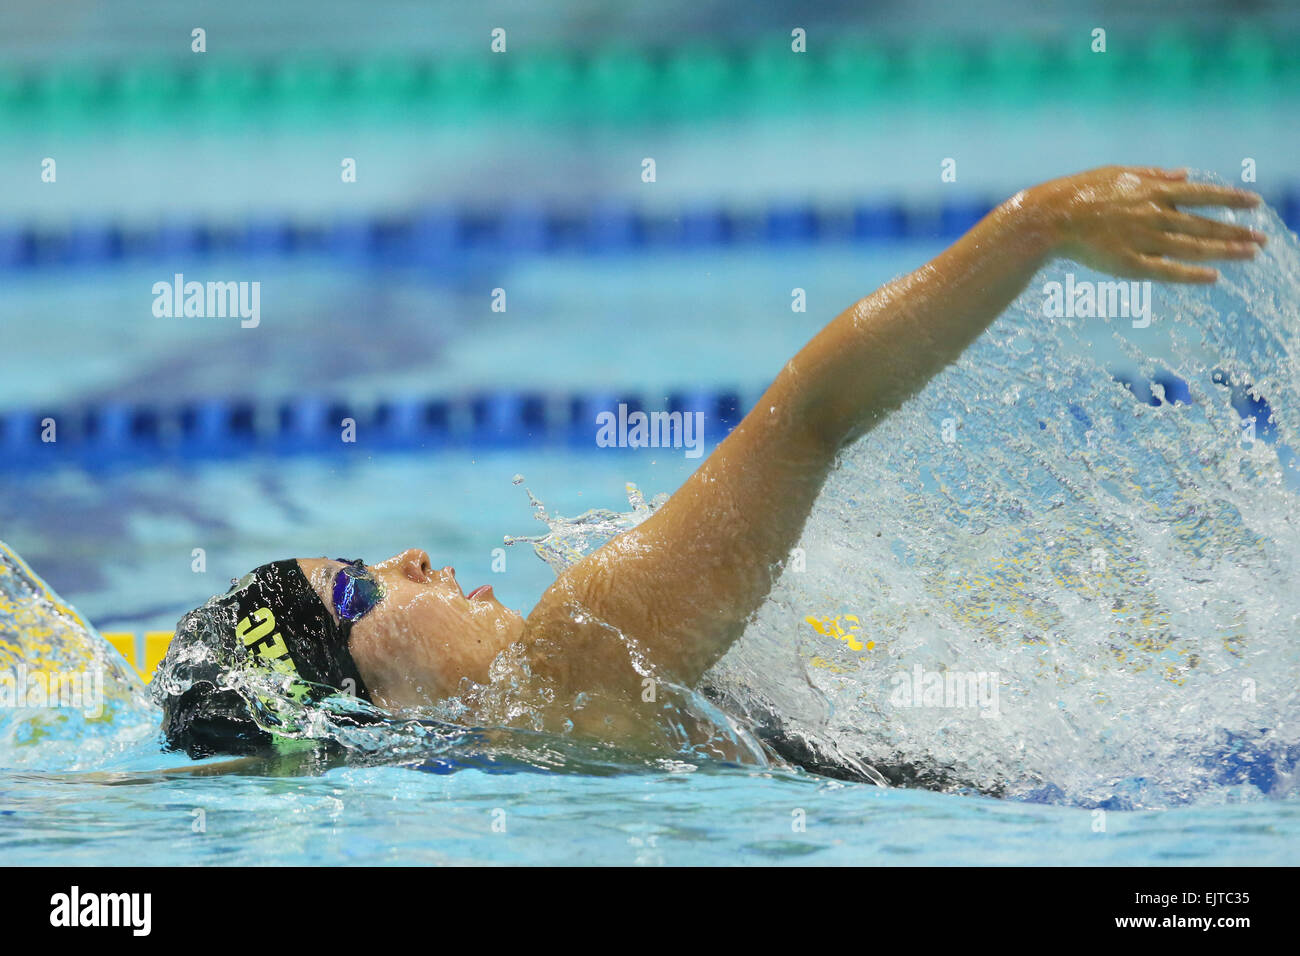 tatsumi international swimming pool tokyo japan 29th mar 2015 miono takeuchi march 29 2015 swimming the 37th joc junior olympic cup womens 50m - Olympic Swimming Pool 2015